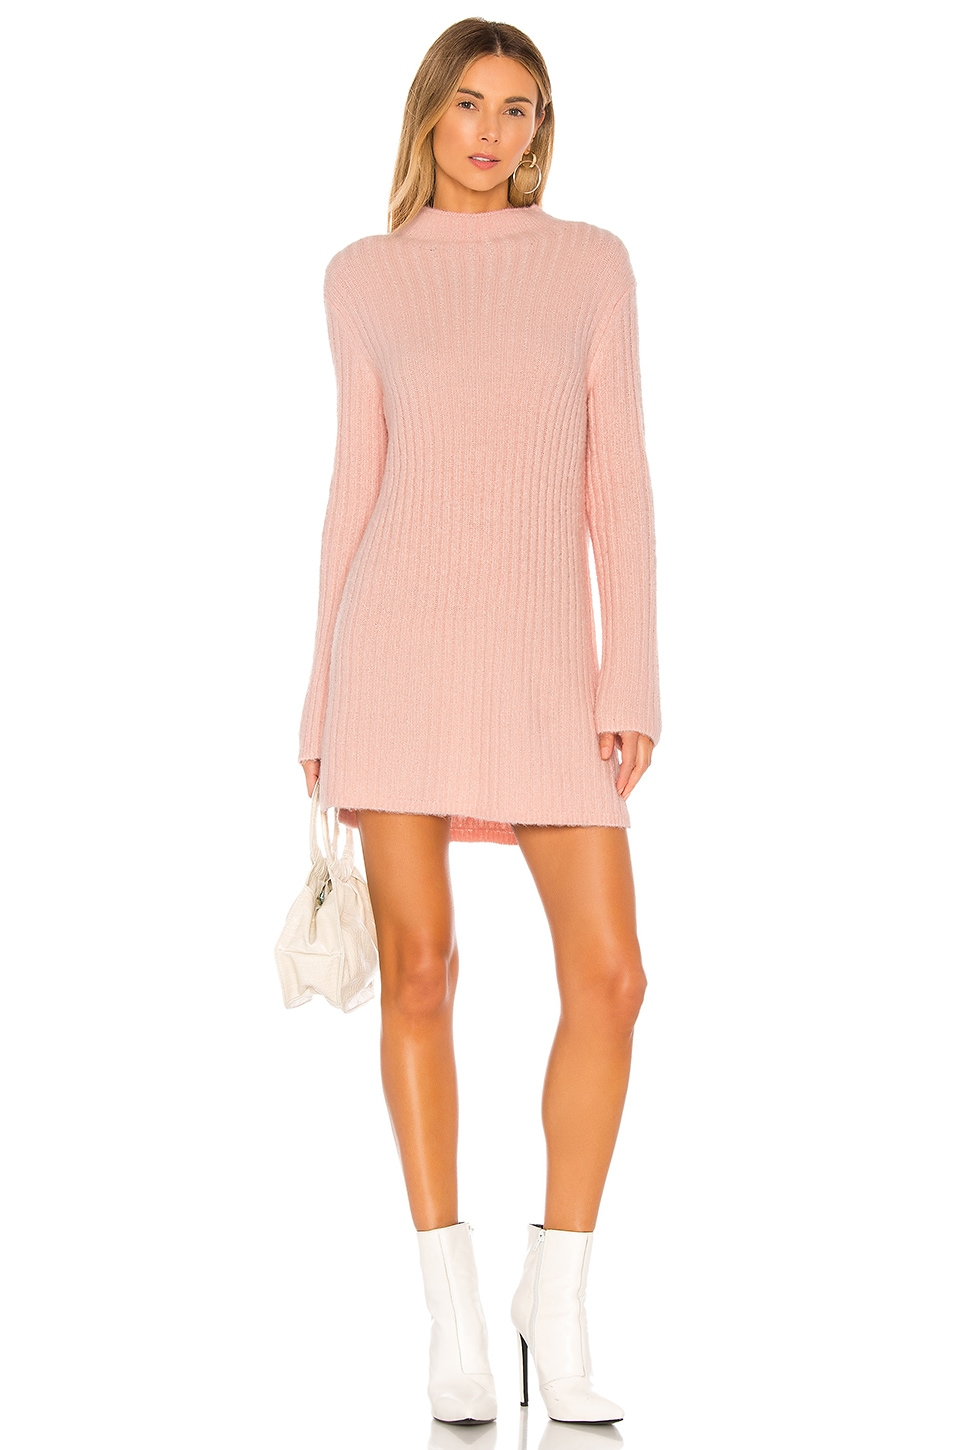 Lovers + Friends Julana Sweater in Blush